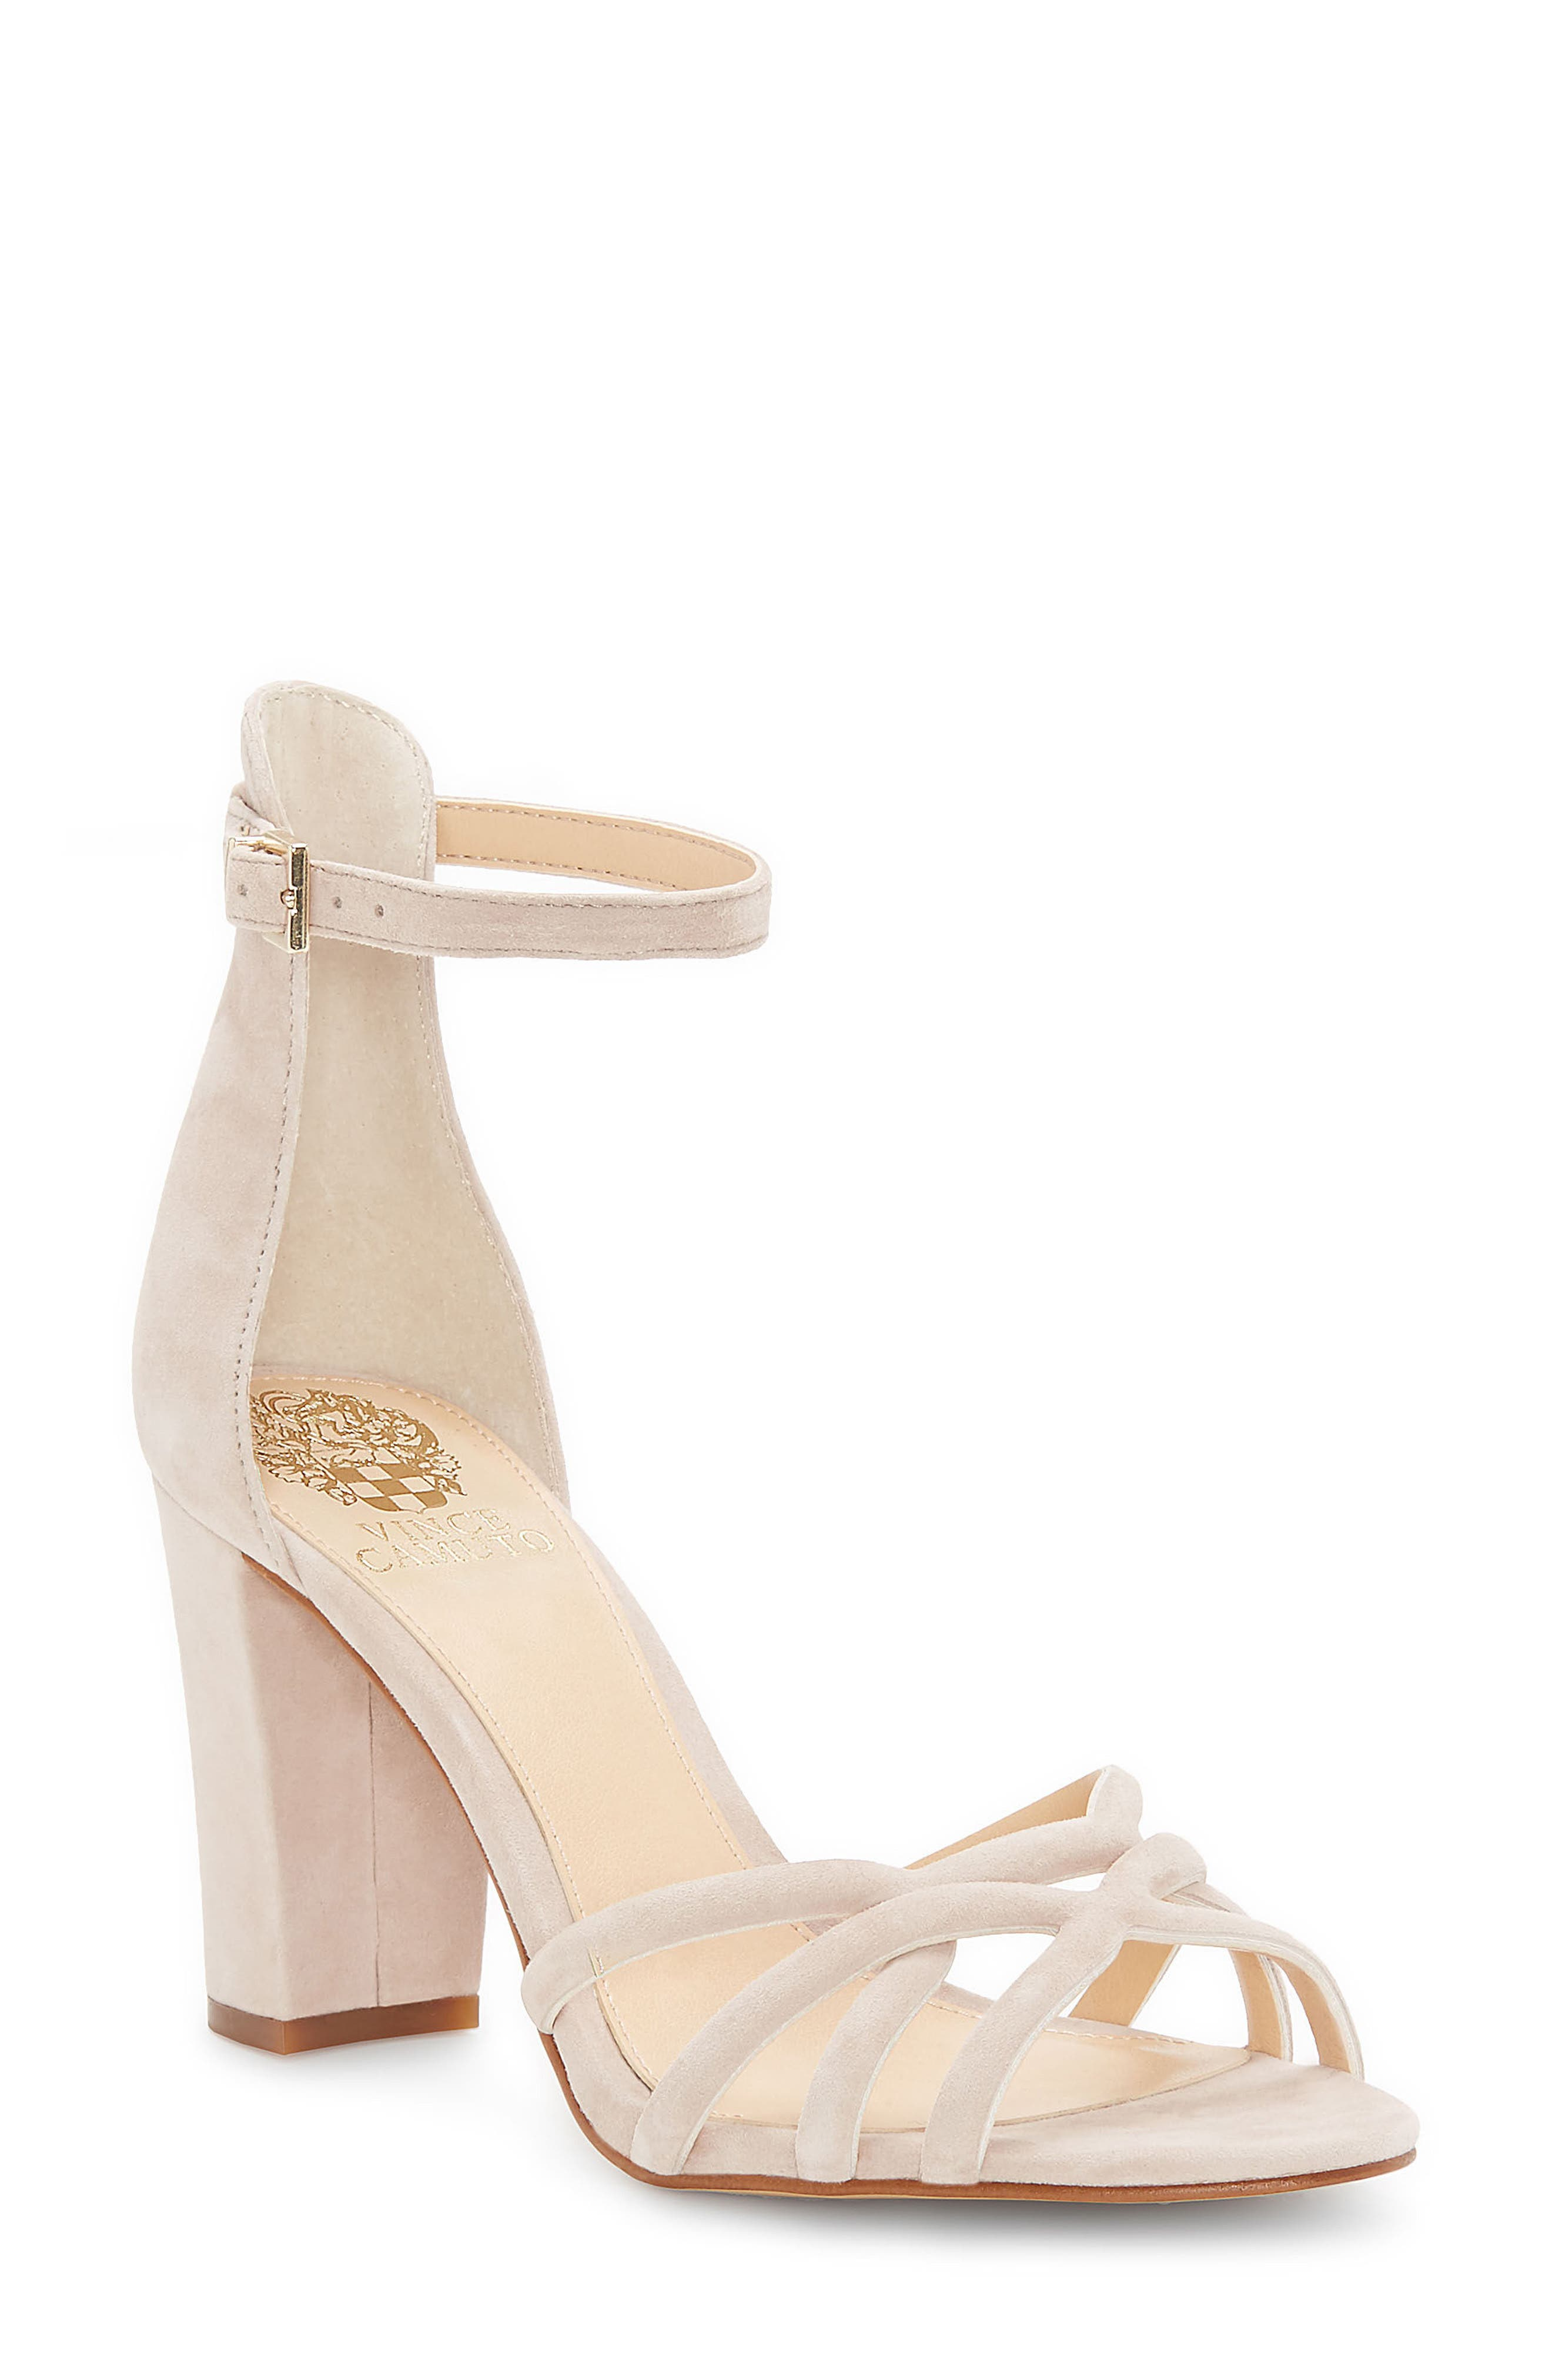 Catelia Ankle Strap Sandal,                         Main,                         color, Taupe Suede